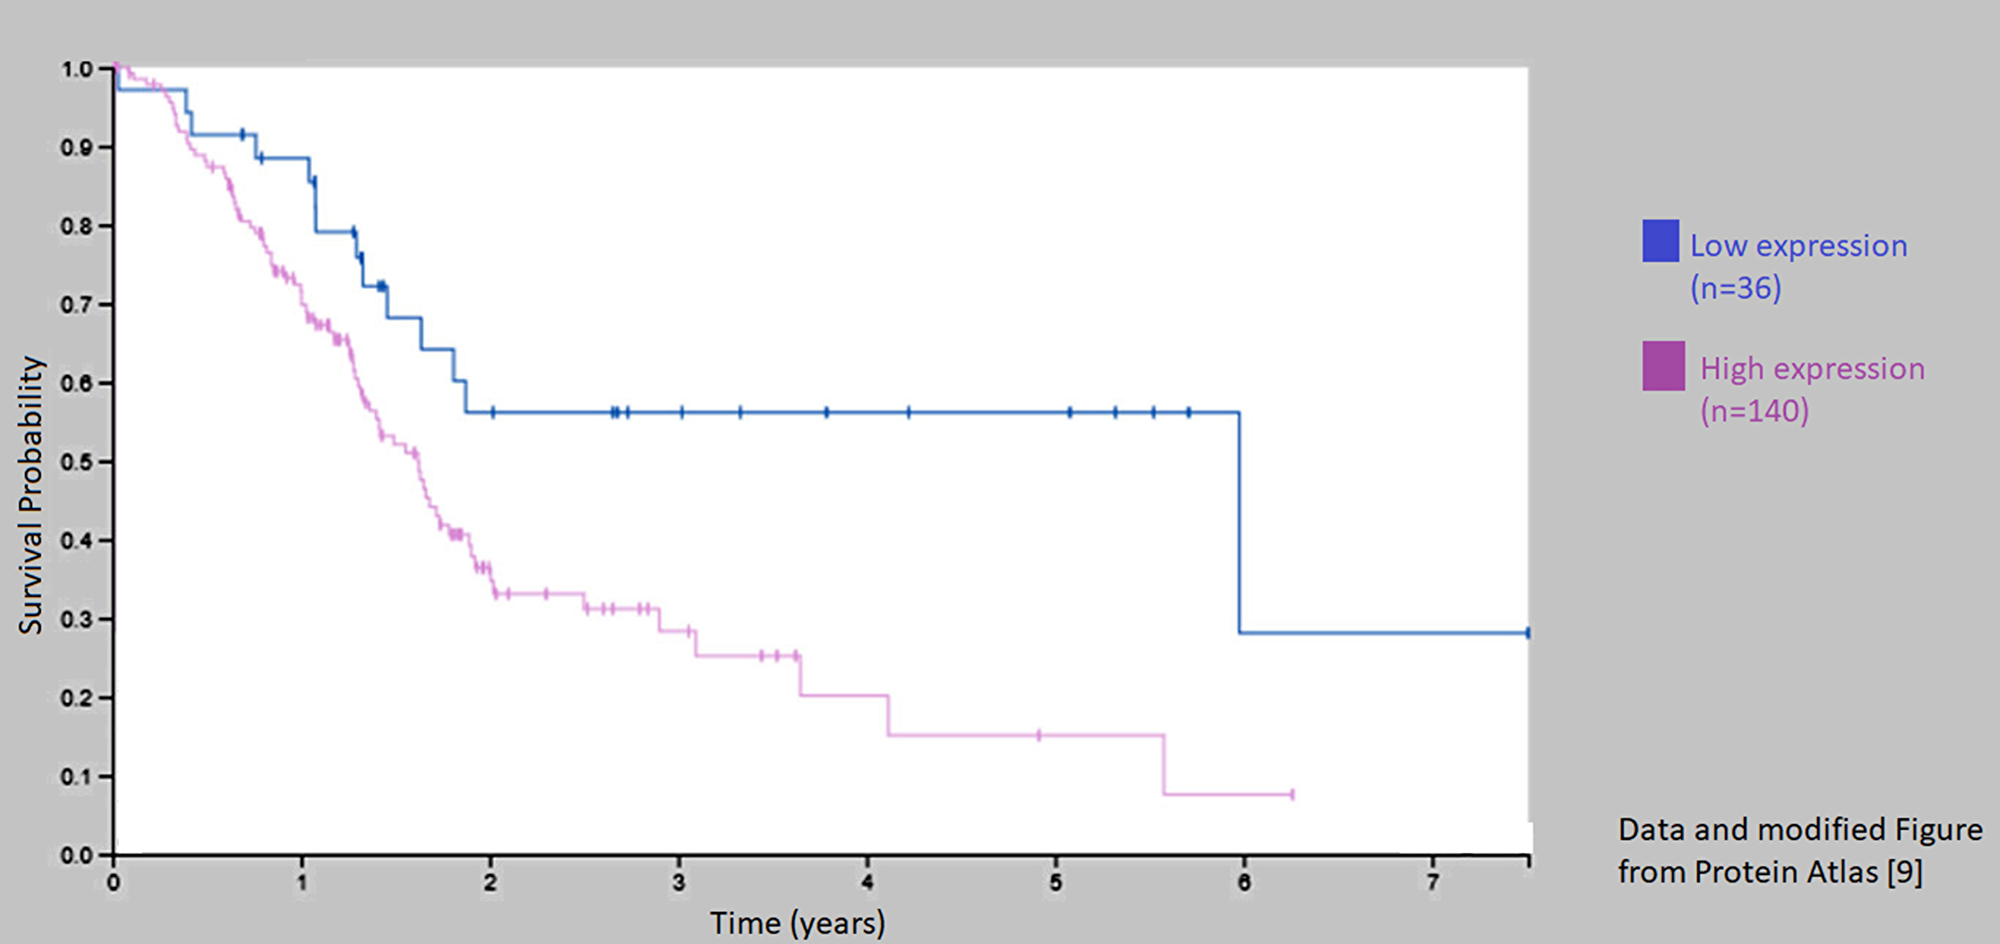 Kaplan–Meier curve for patients with low and high expression of C1-INH (Sering 1).